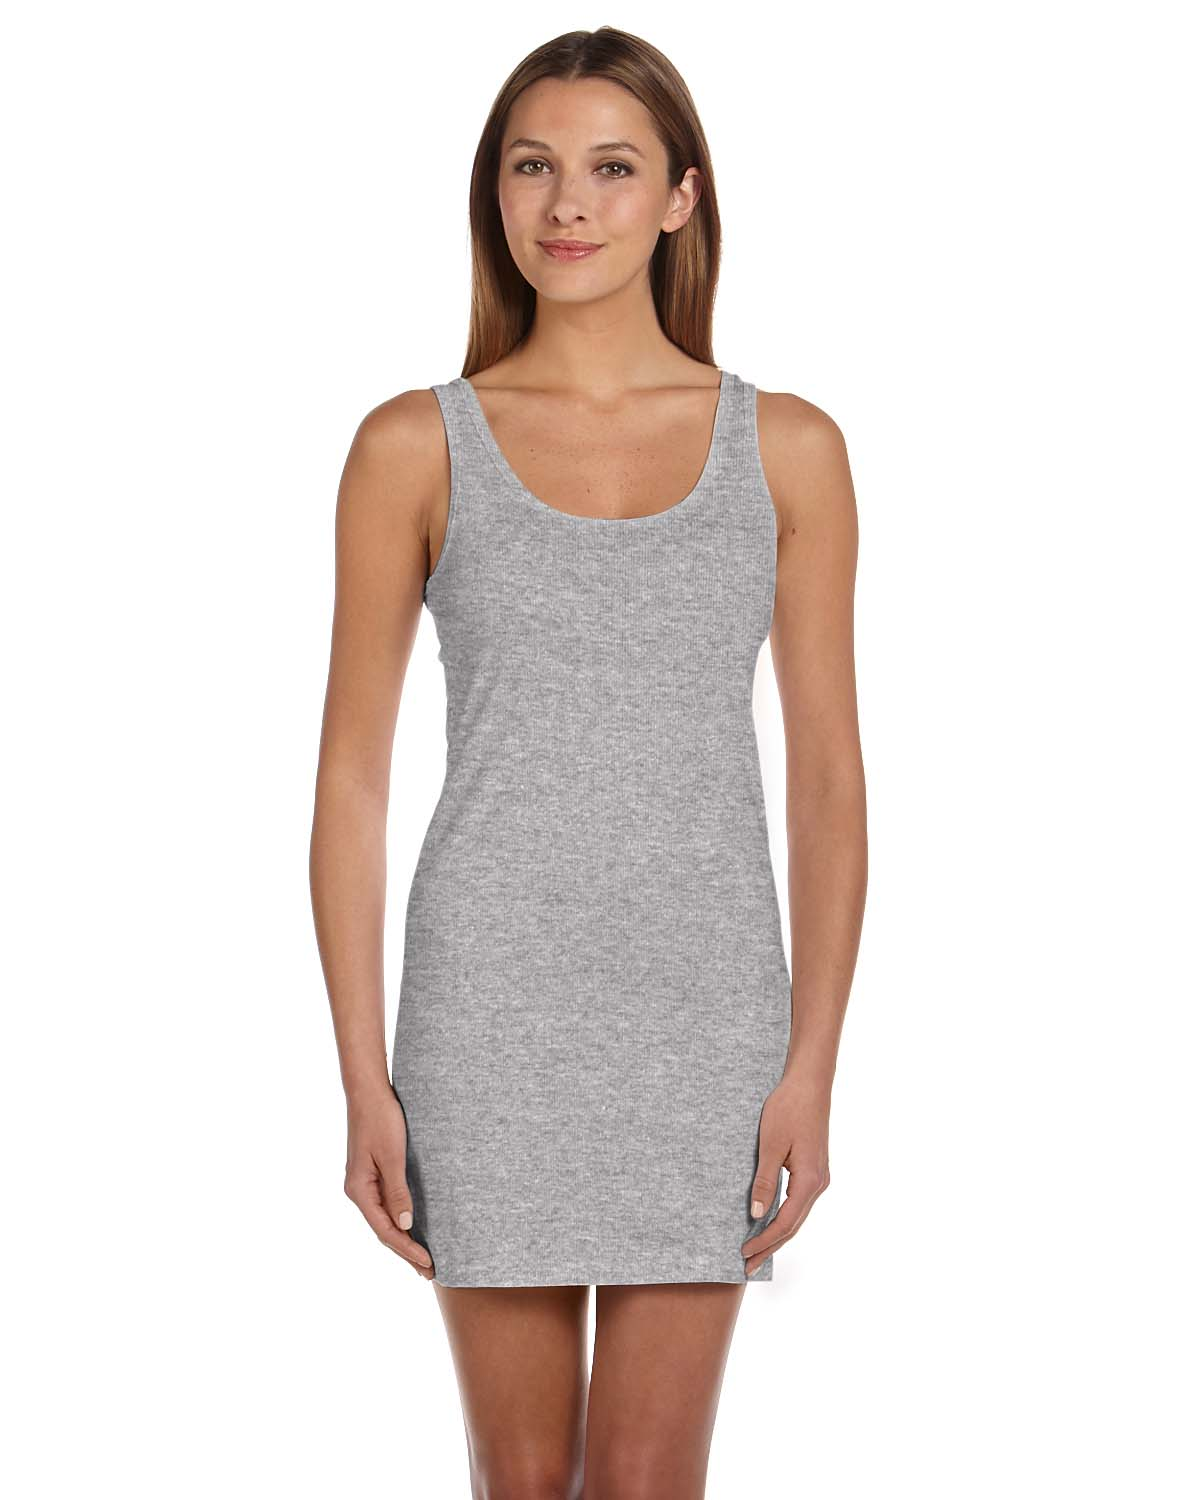 Short Sleeve, Swing hem, tank top dress,Loose fit, tunic top dress MOLERANI Women's Casual Swing Simple T-Shirt Loose Dress. by MOLERANI. $ - $ $ 12 $ 16 99 Prime. FREE Shipping on eligible orders. Some sizes/colors are Prime eligible. out of 5 stars